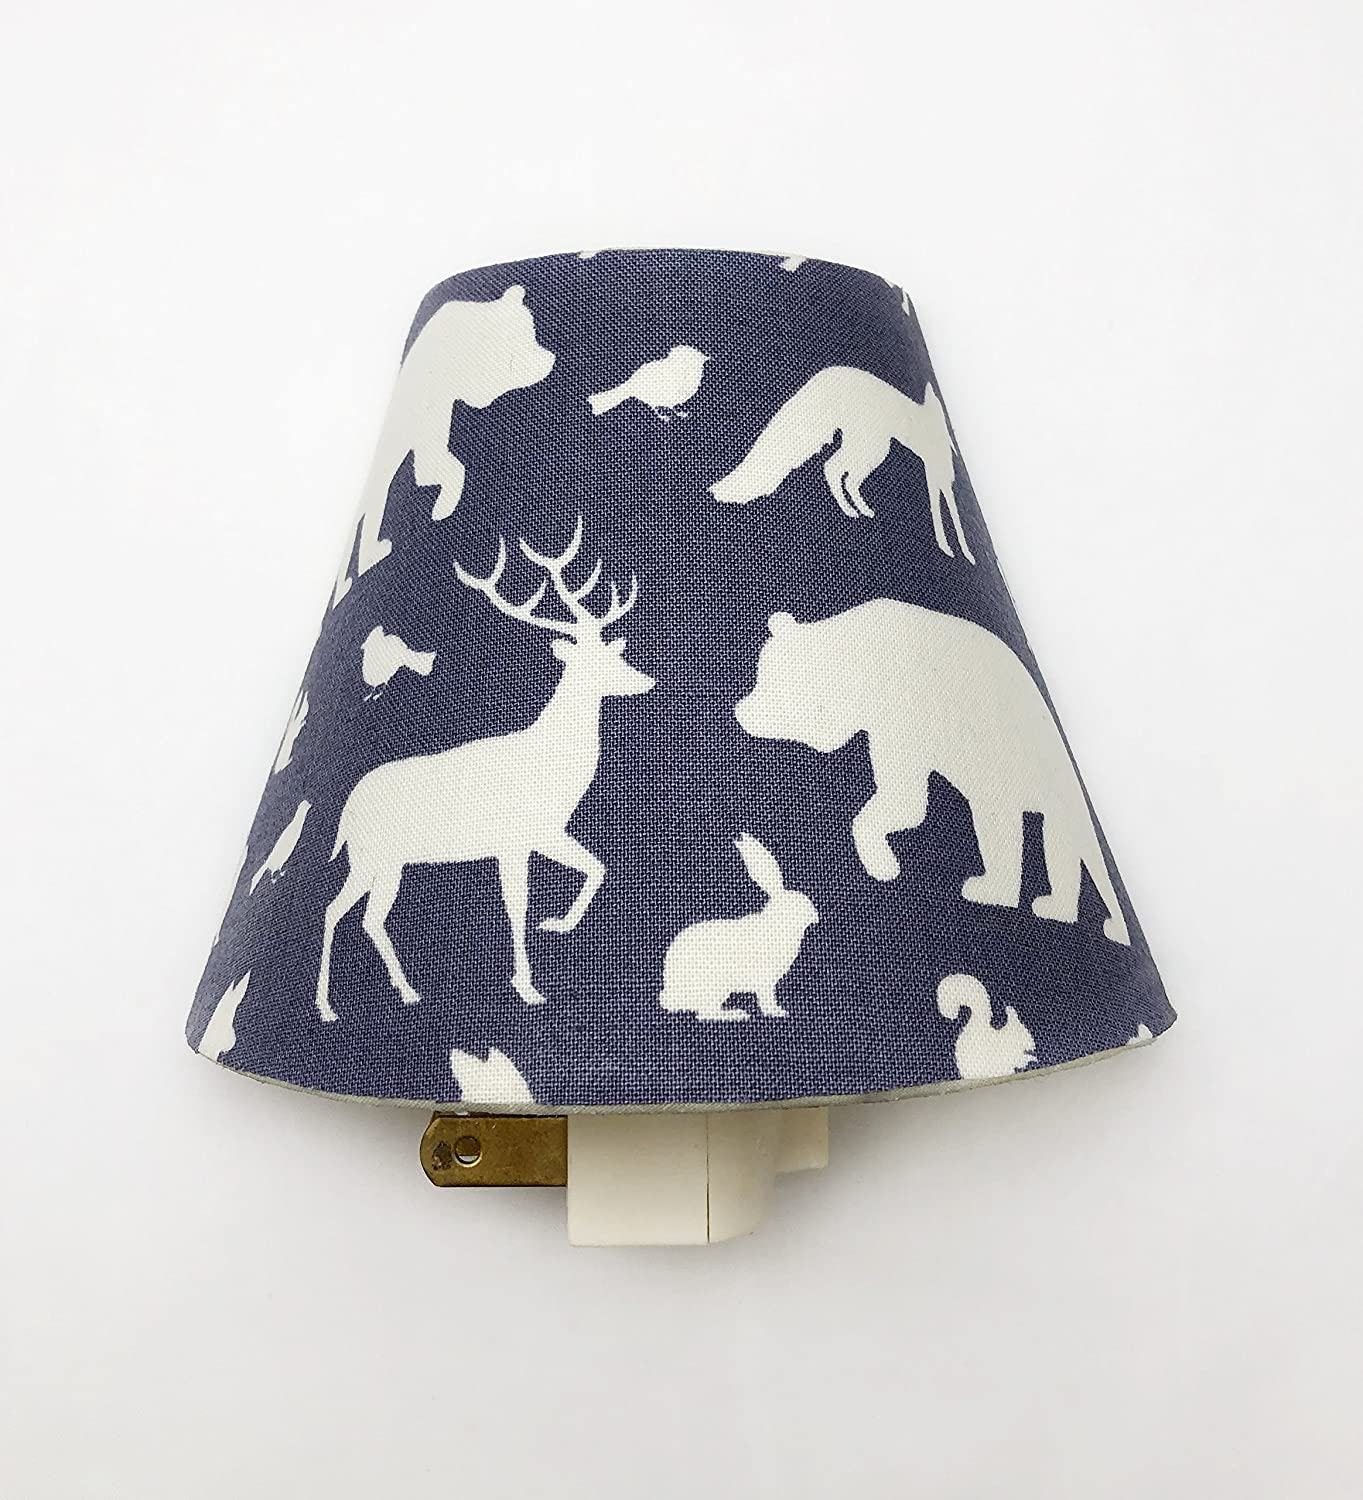 Into the Woods Plug In Night Light/Nursery Decor/Baby Shower Gift/Home Decor/Kid's Room/Lighting/Hallway Light/Housewarming/Deer/Elk